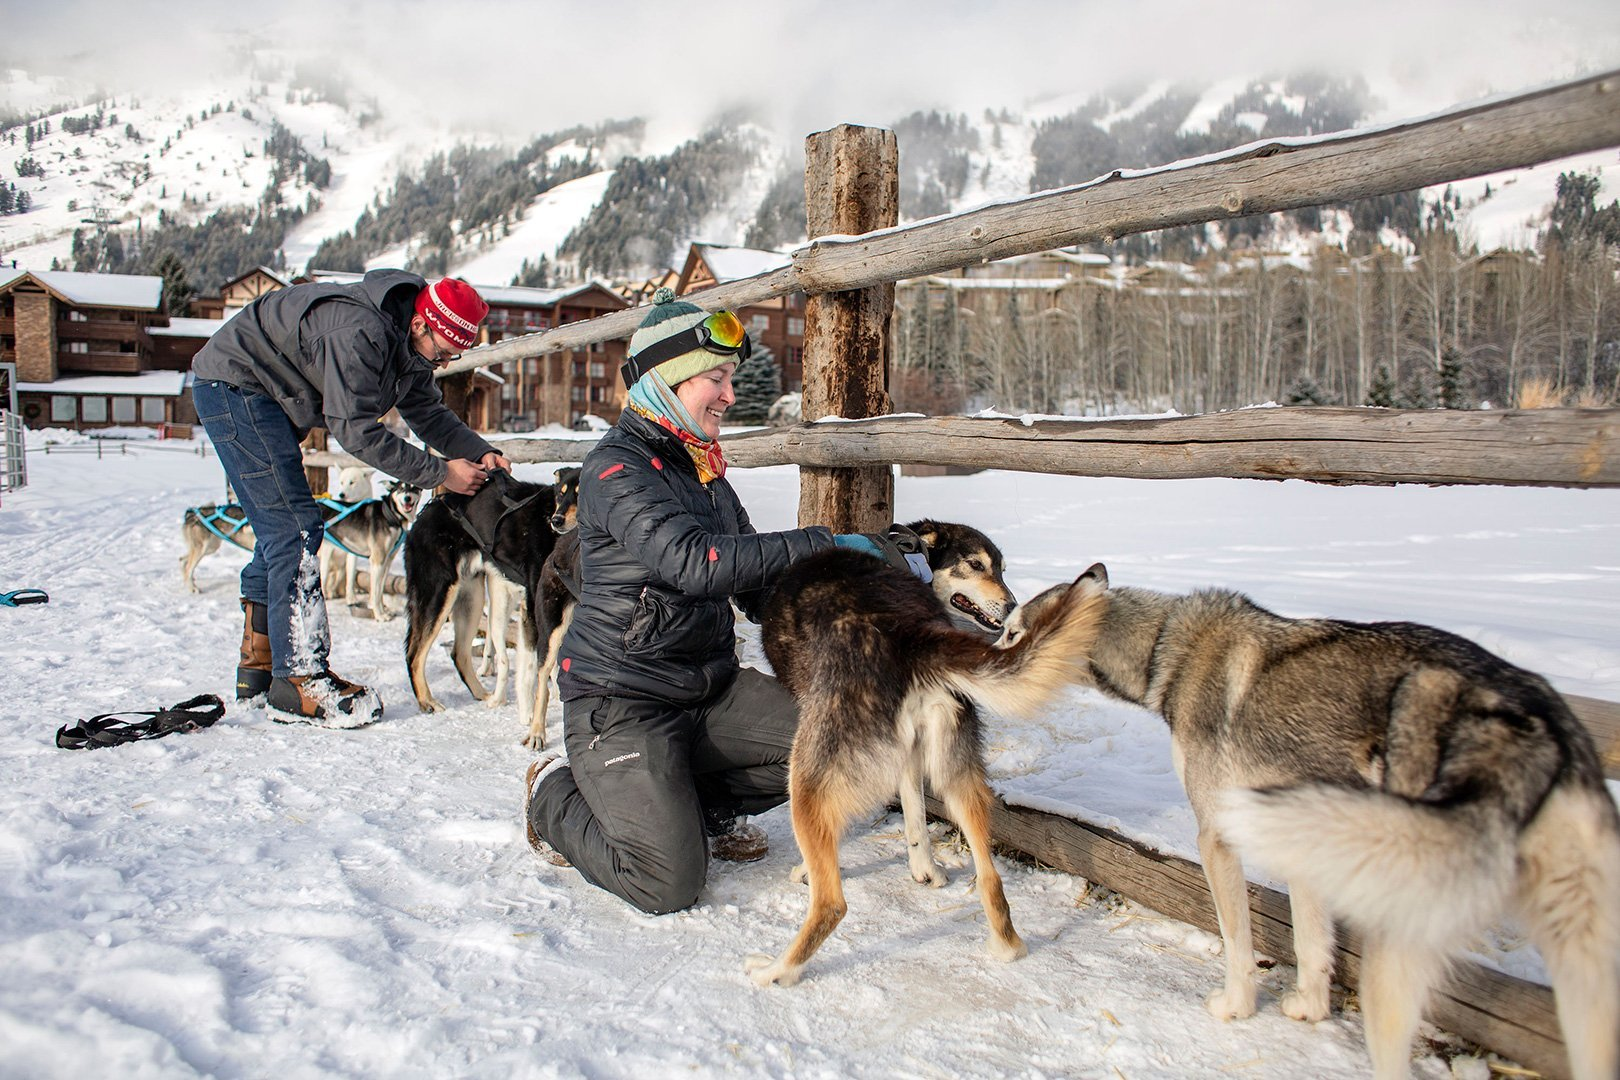 On the right track | New business offers sled dog tours in Wyoming